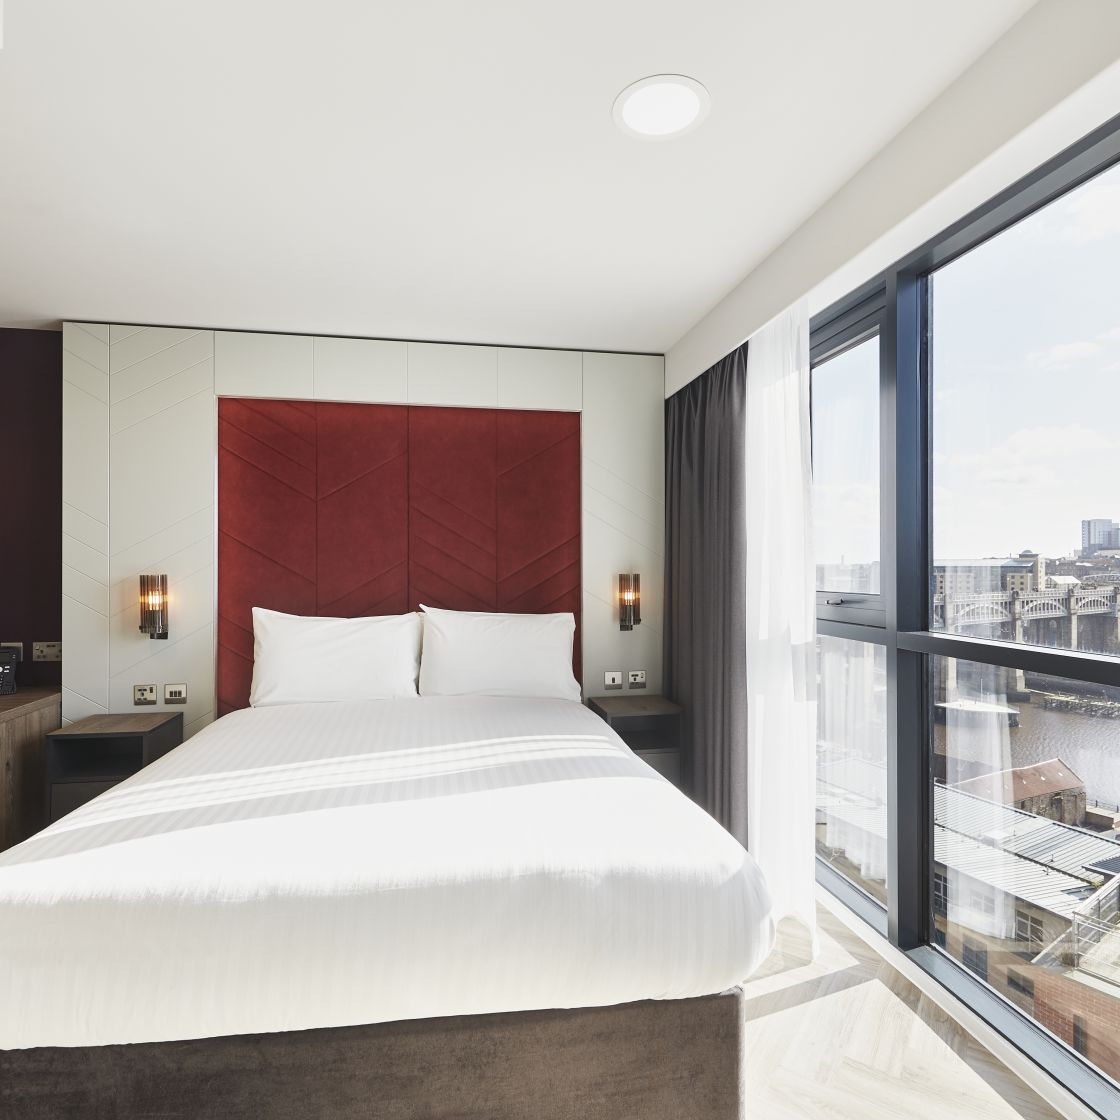 Smart Studio Student Apartment in Newcastle with King Size Bed. IconInc @ Roomzzz